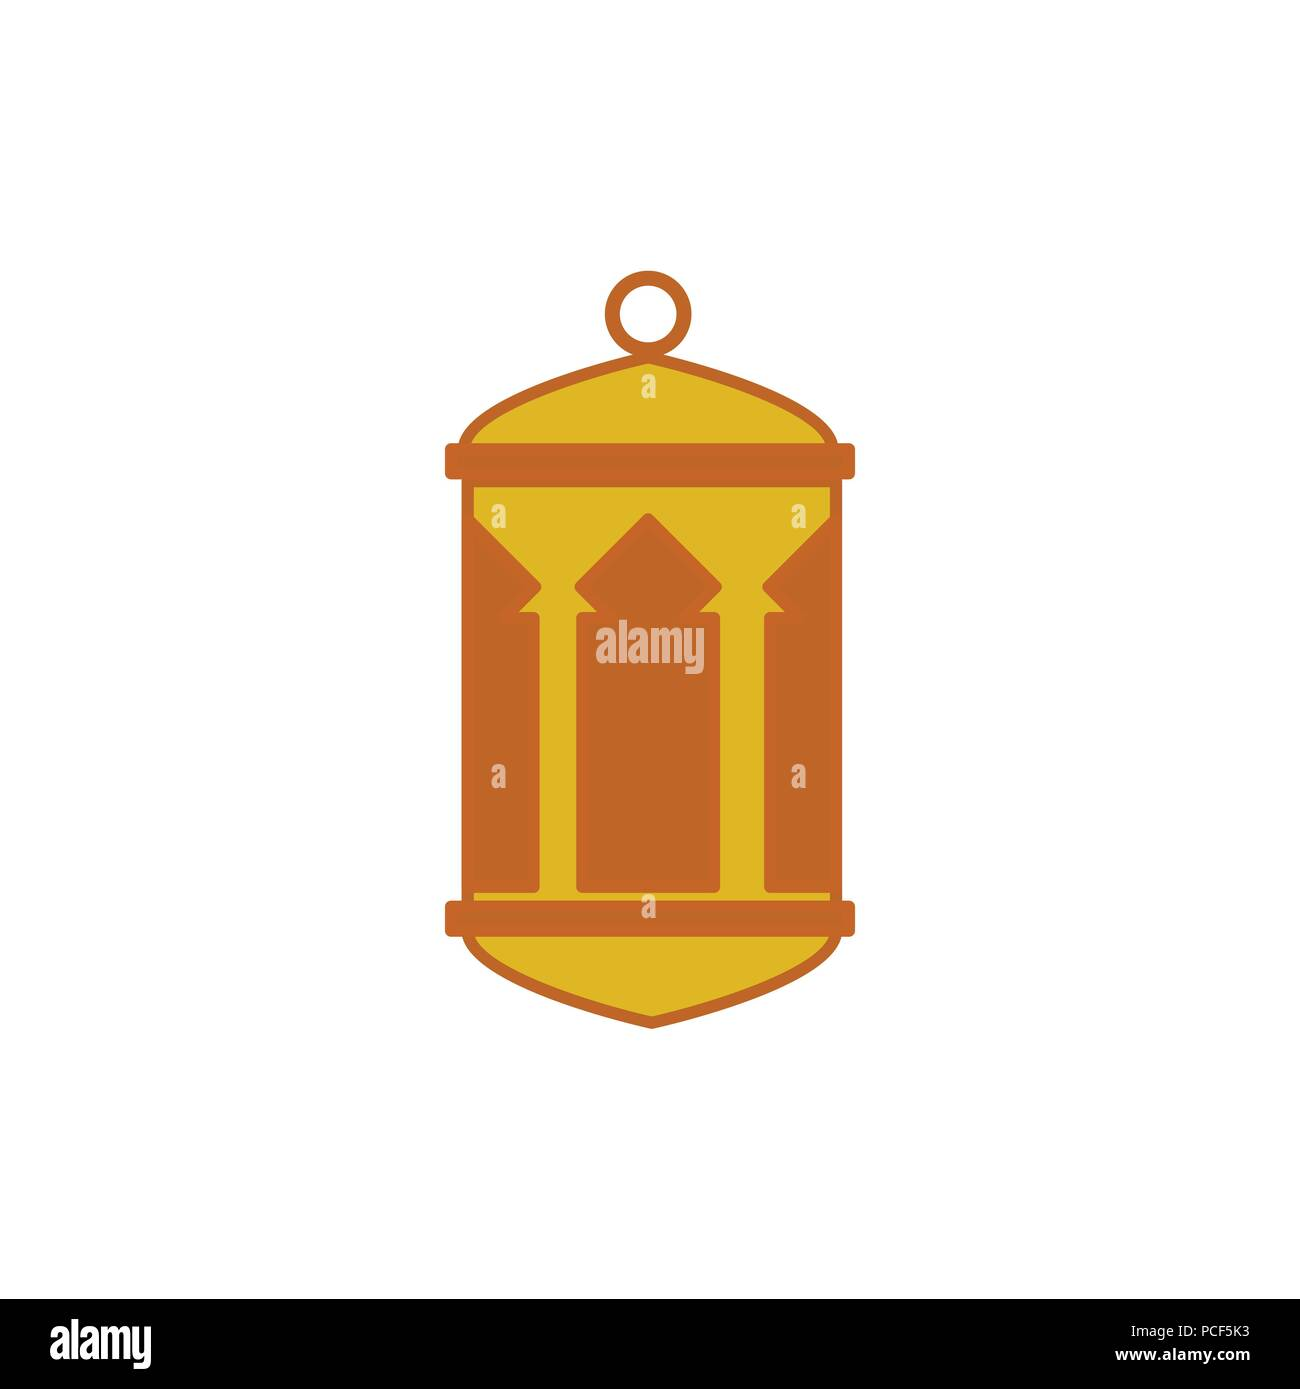 House Pillars Round Top Bottom Hanging Lantern Vector Illustration Symbol Graphic Design Template - Stock Image